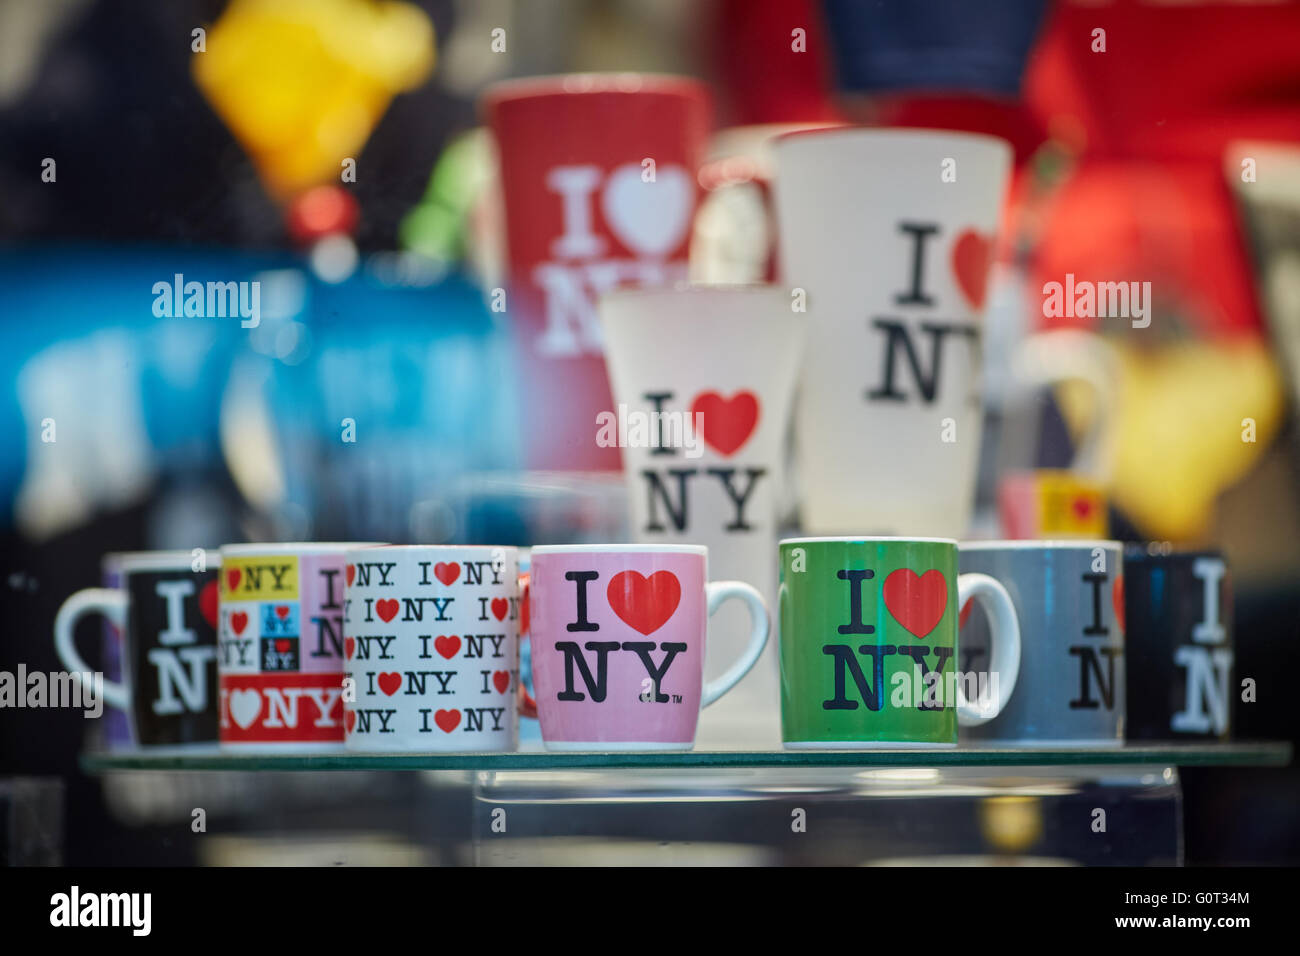 New York times Square broadway  gift i luv love ny nyc cups mugs presents displayed in gift shop window close up - Stock Image